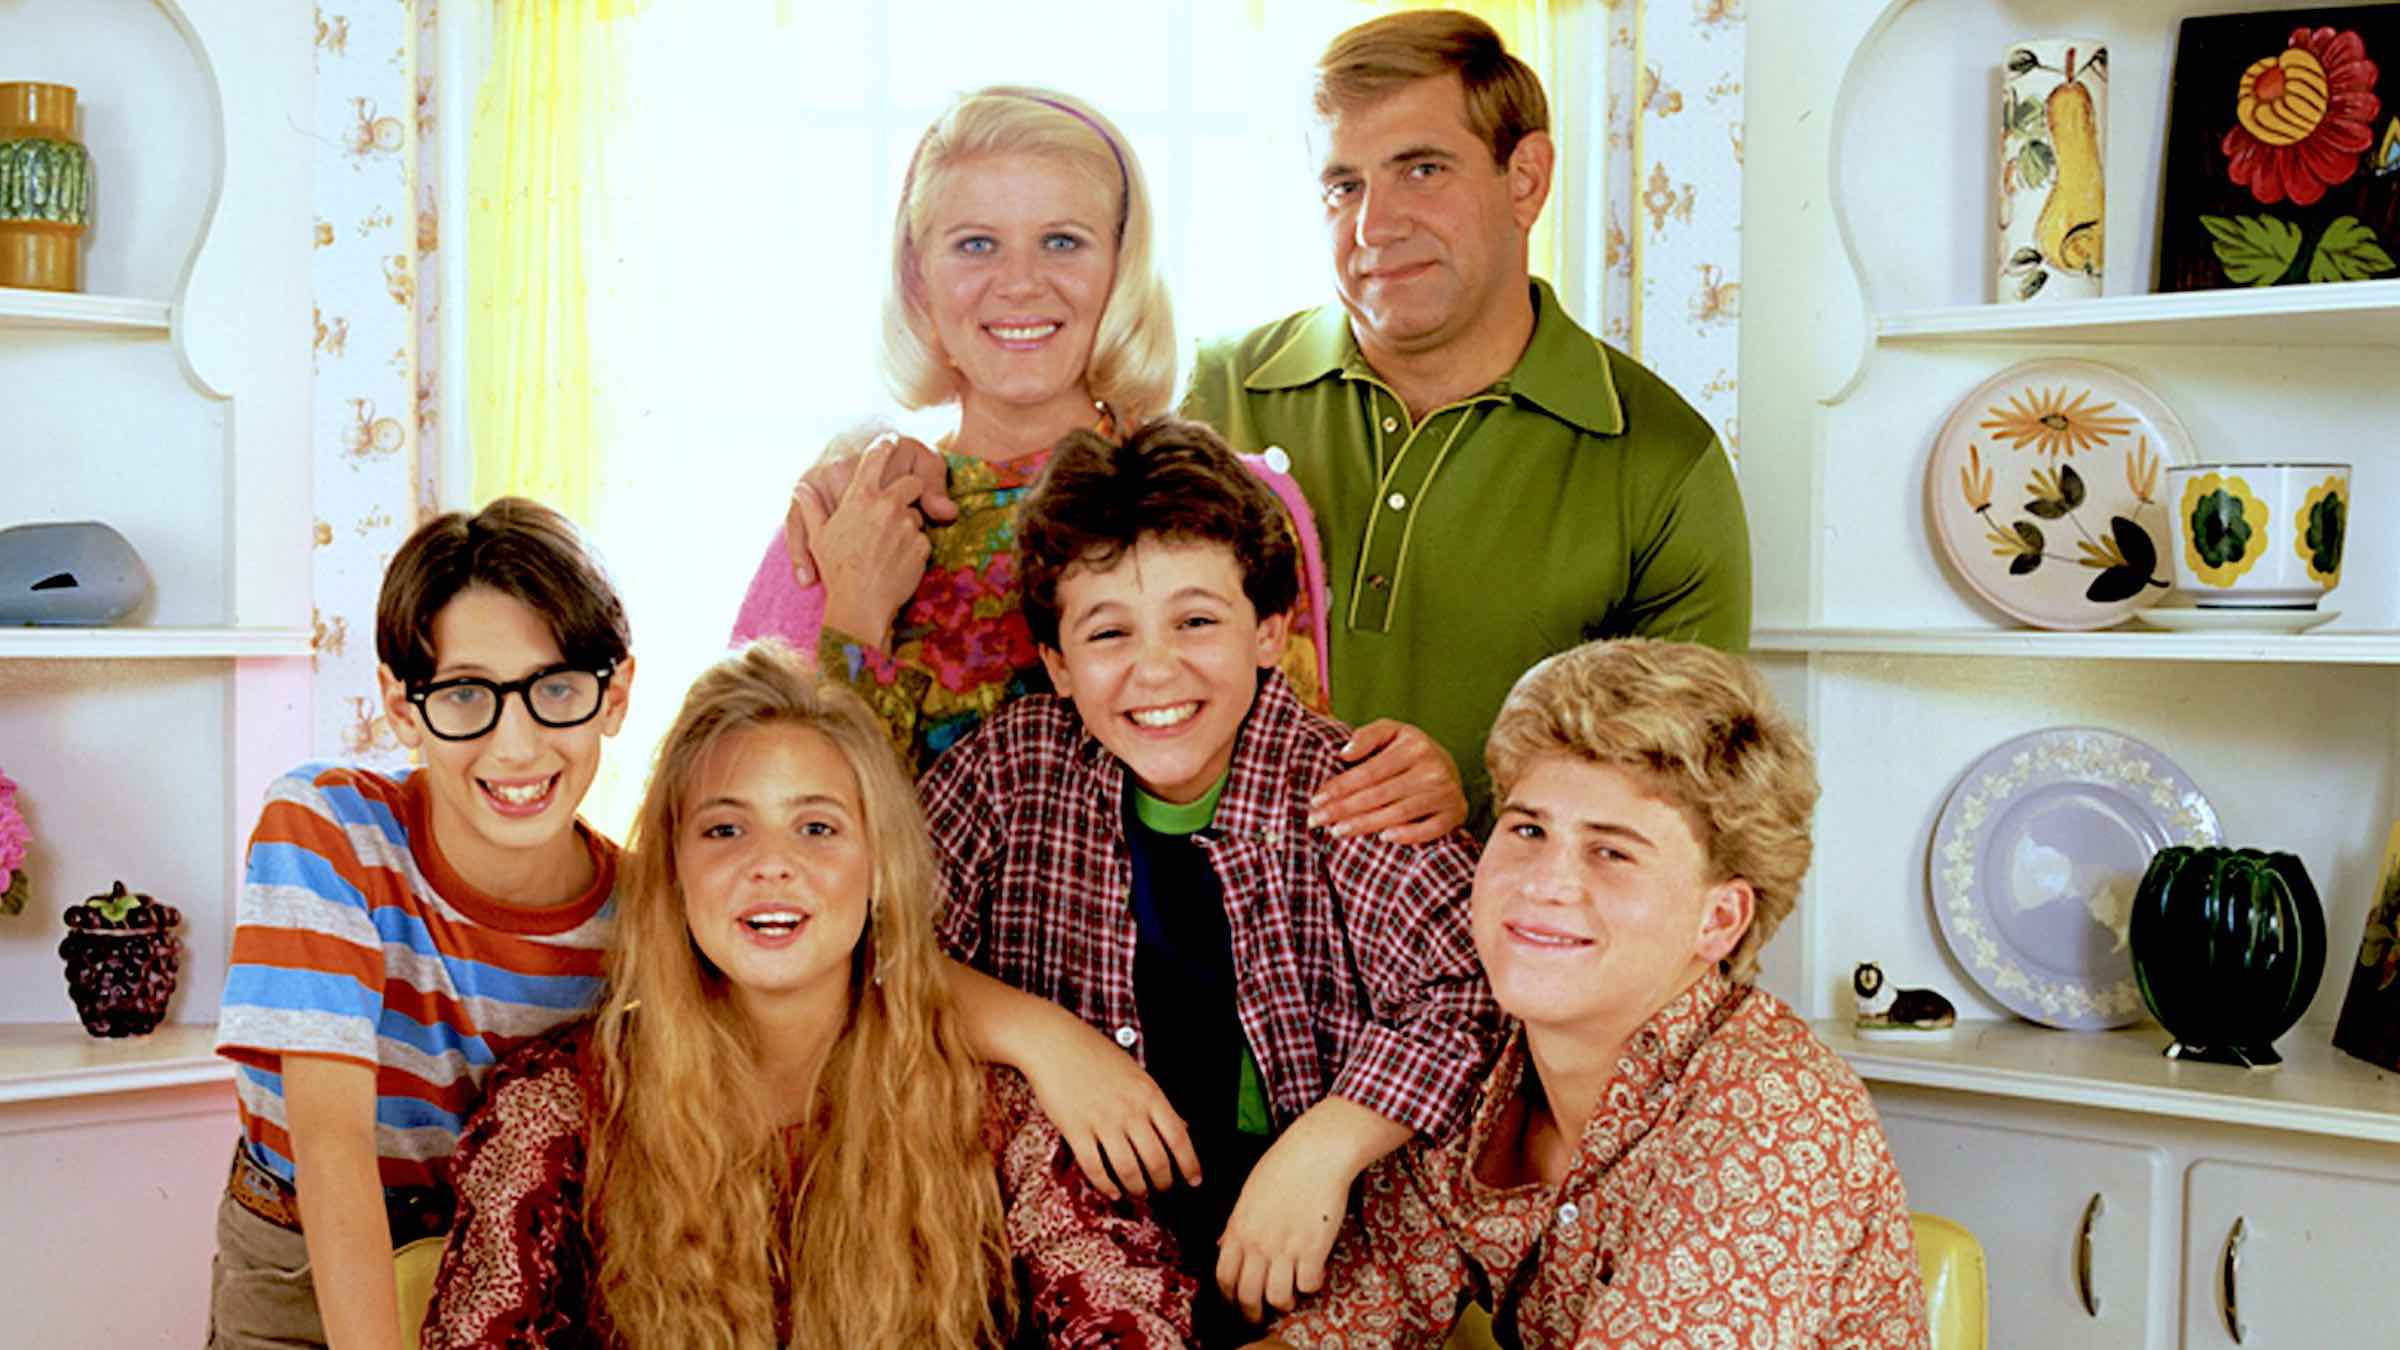 Is 'The Wonder Years' the best series about college of all time?